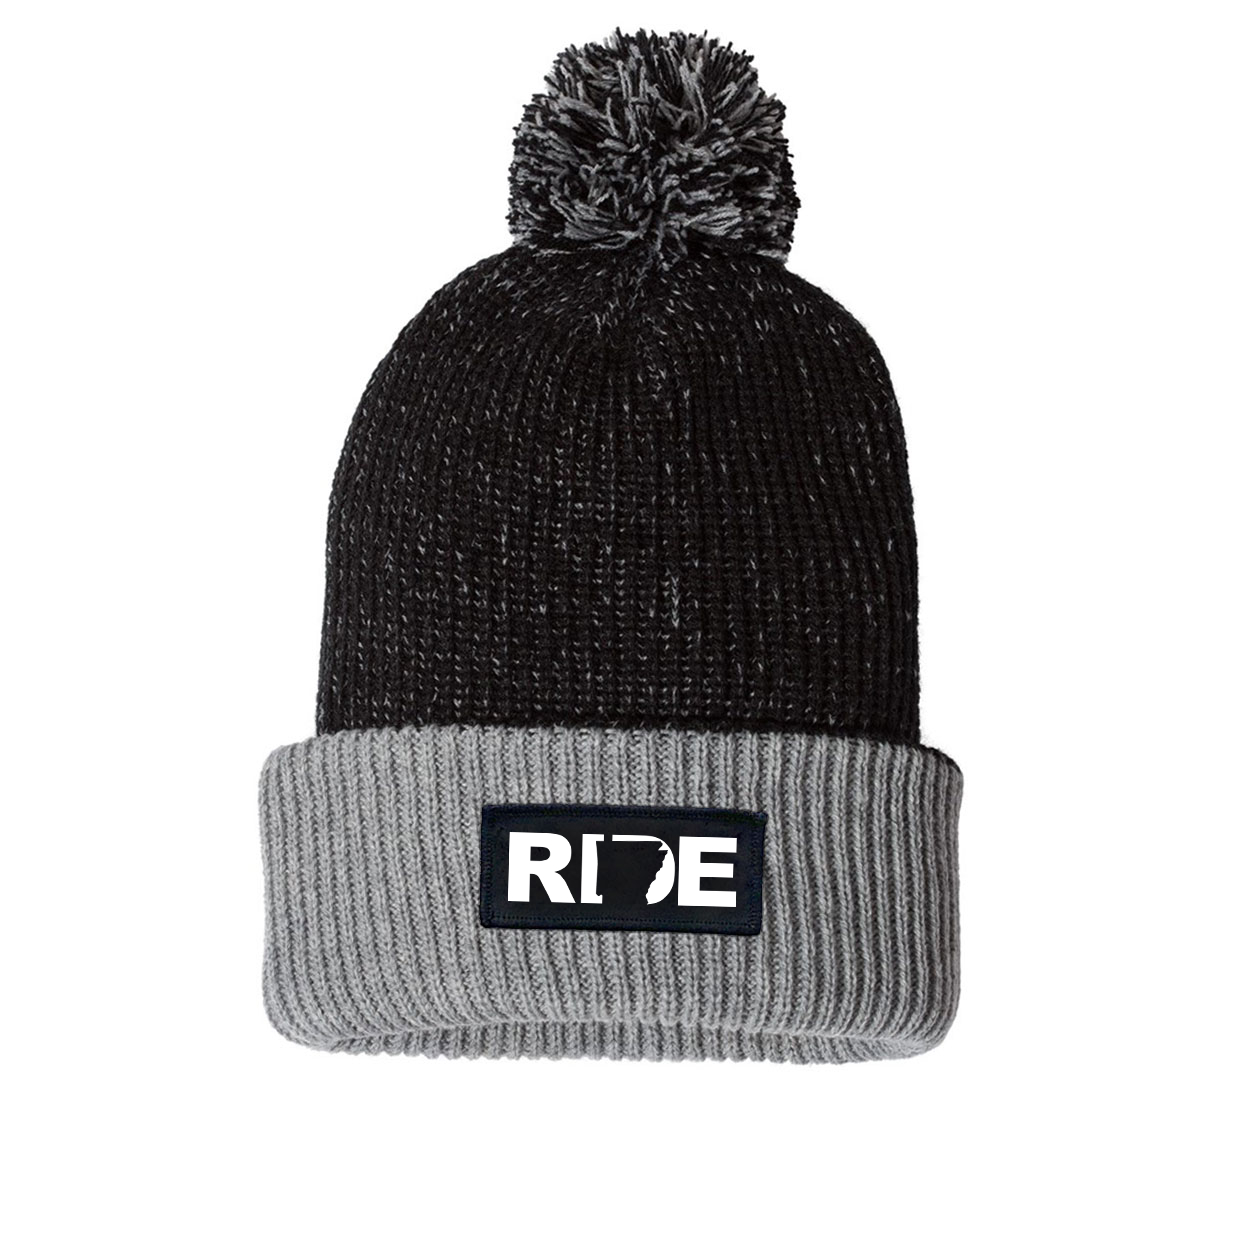 Ride Arkansas Night Out Woven Patch Roll Up Pom Knit Beanie Black/Gray (White Logo)